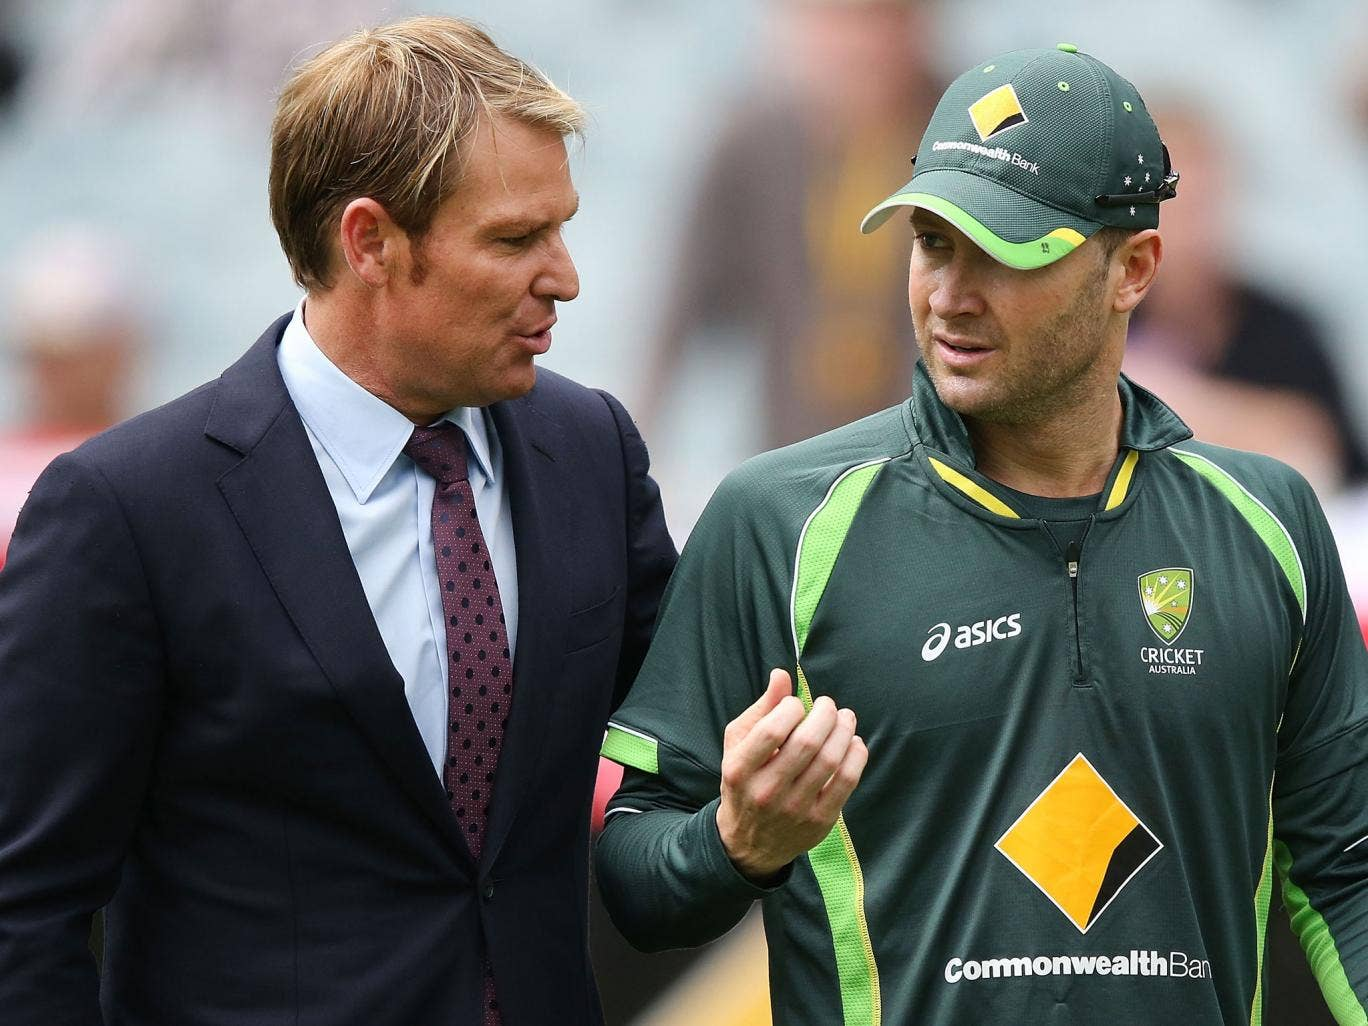 Shane Warne will join up with the Australian cricket team as part of their World Twenty20 plans